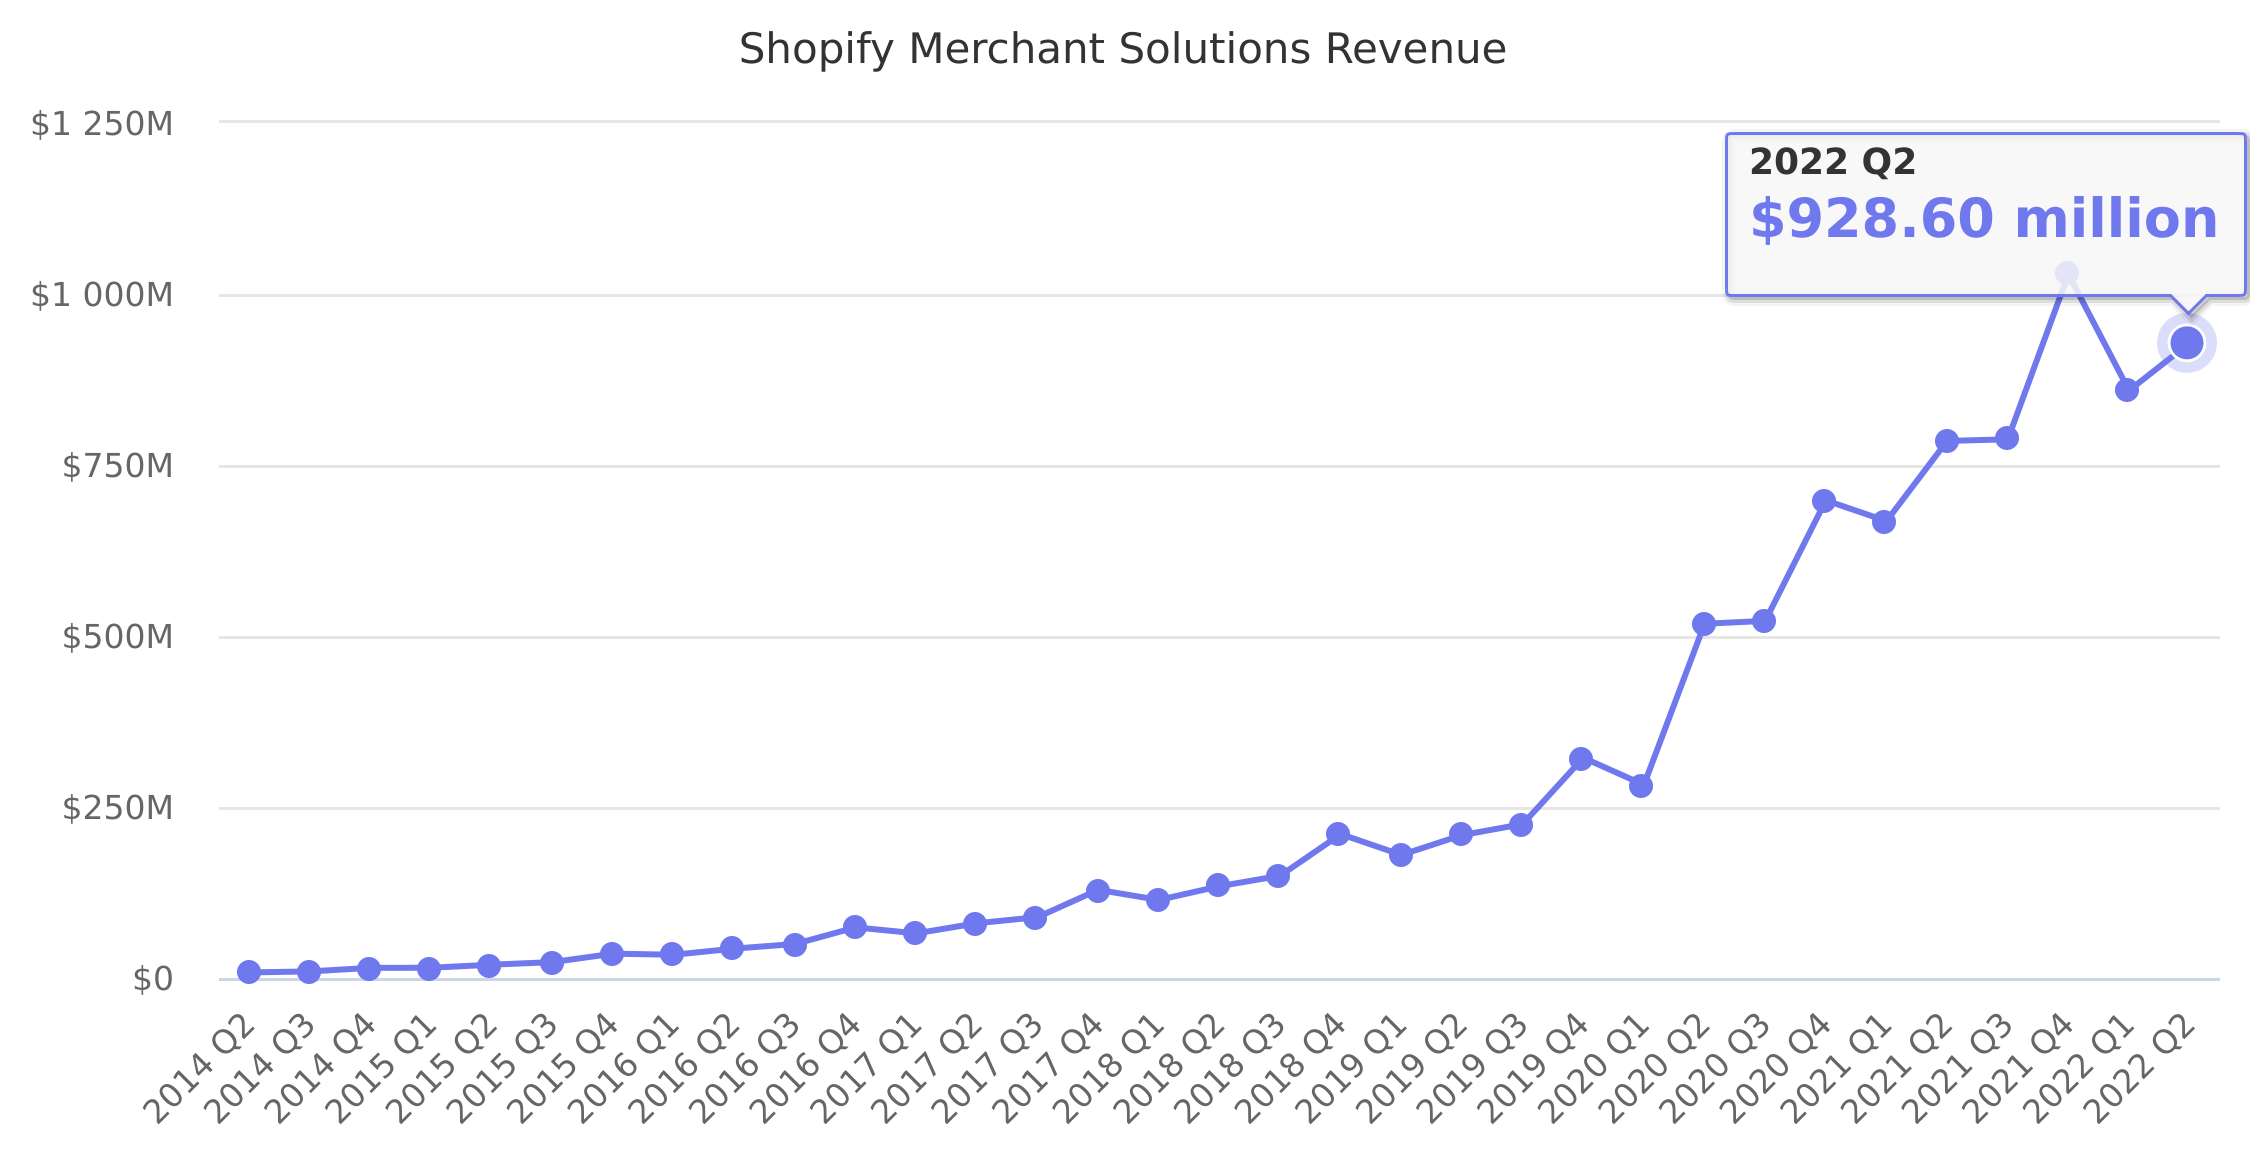 Shopify Merchant Solutions Revenue